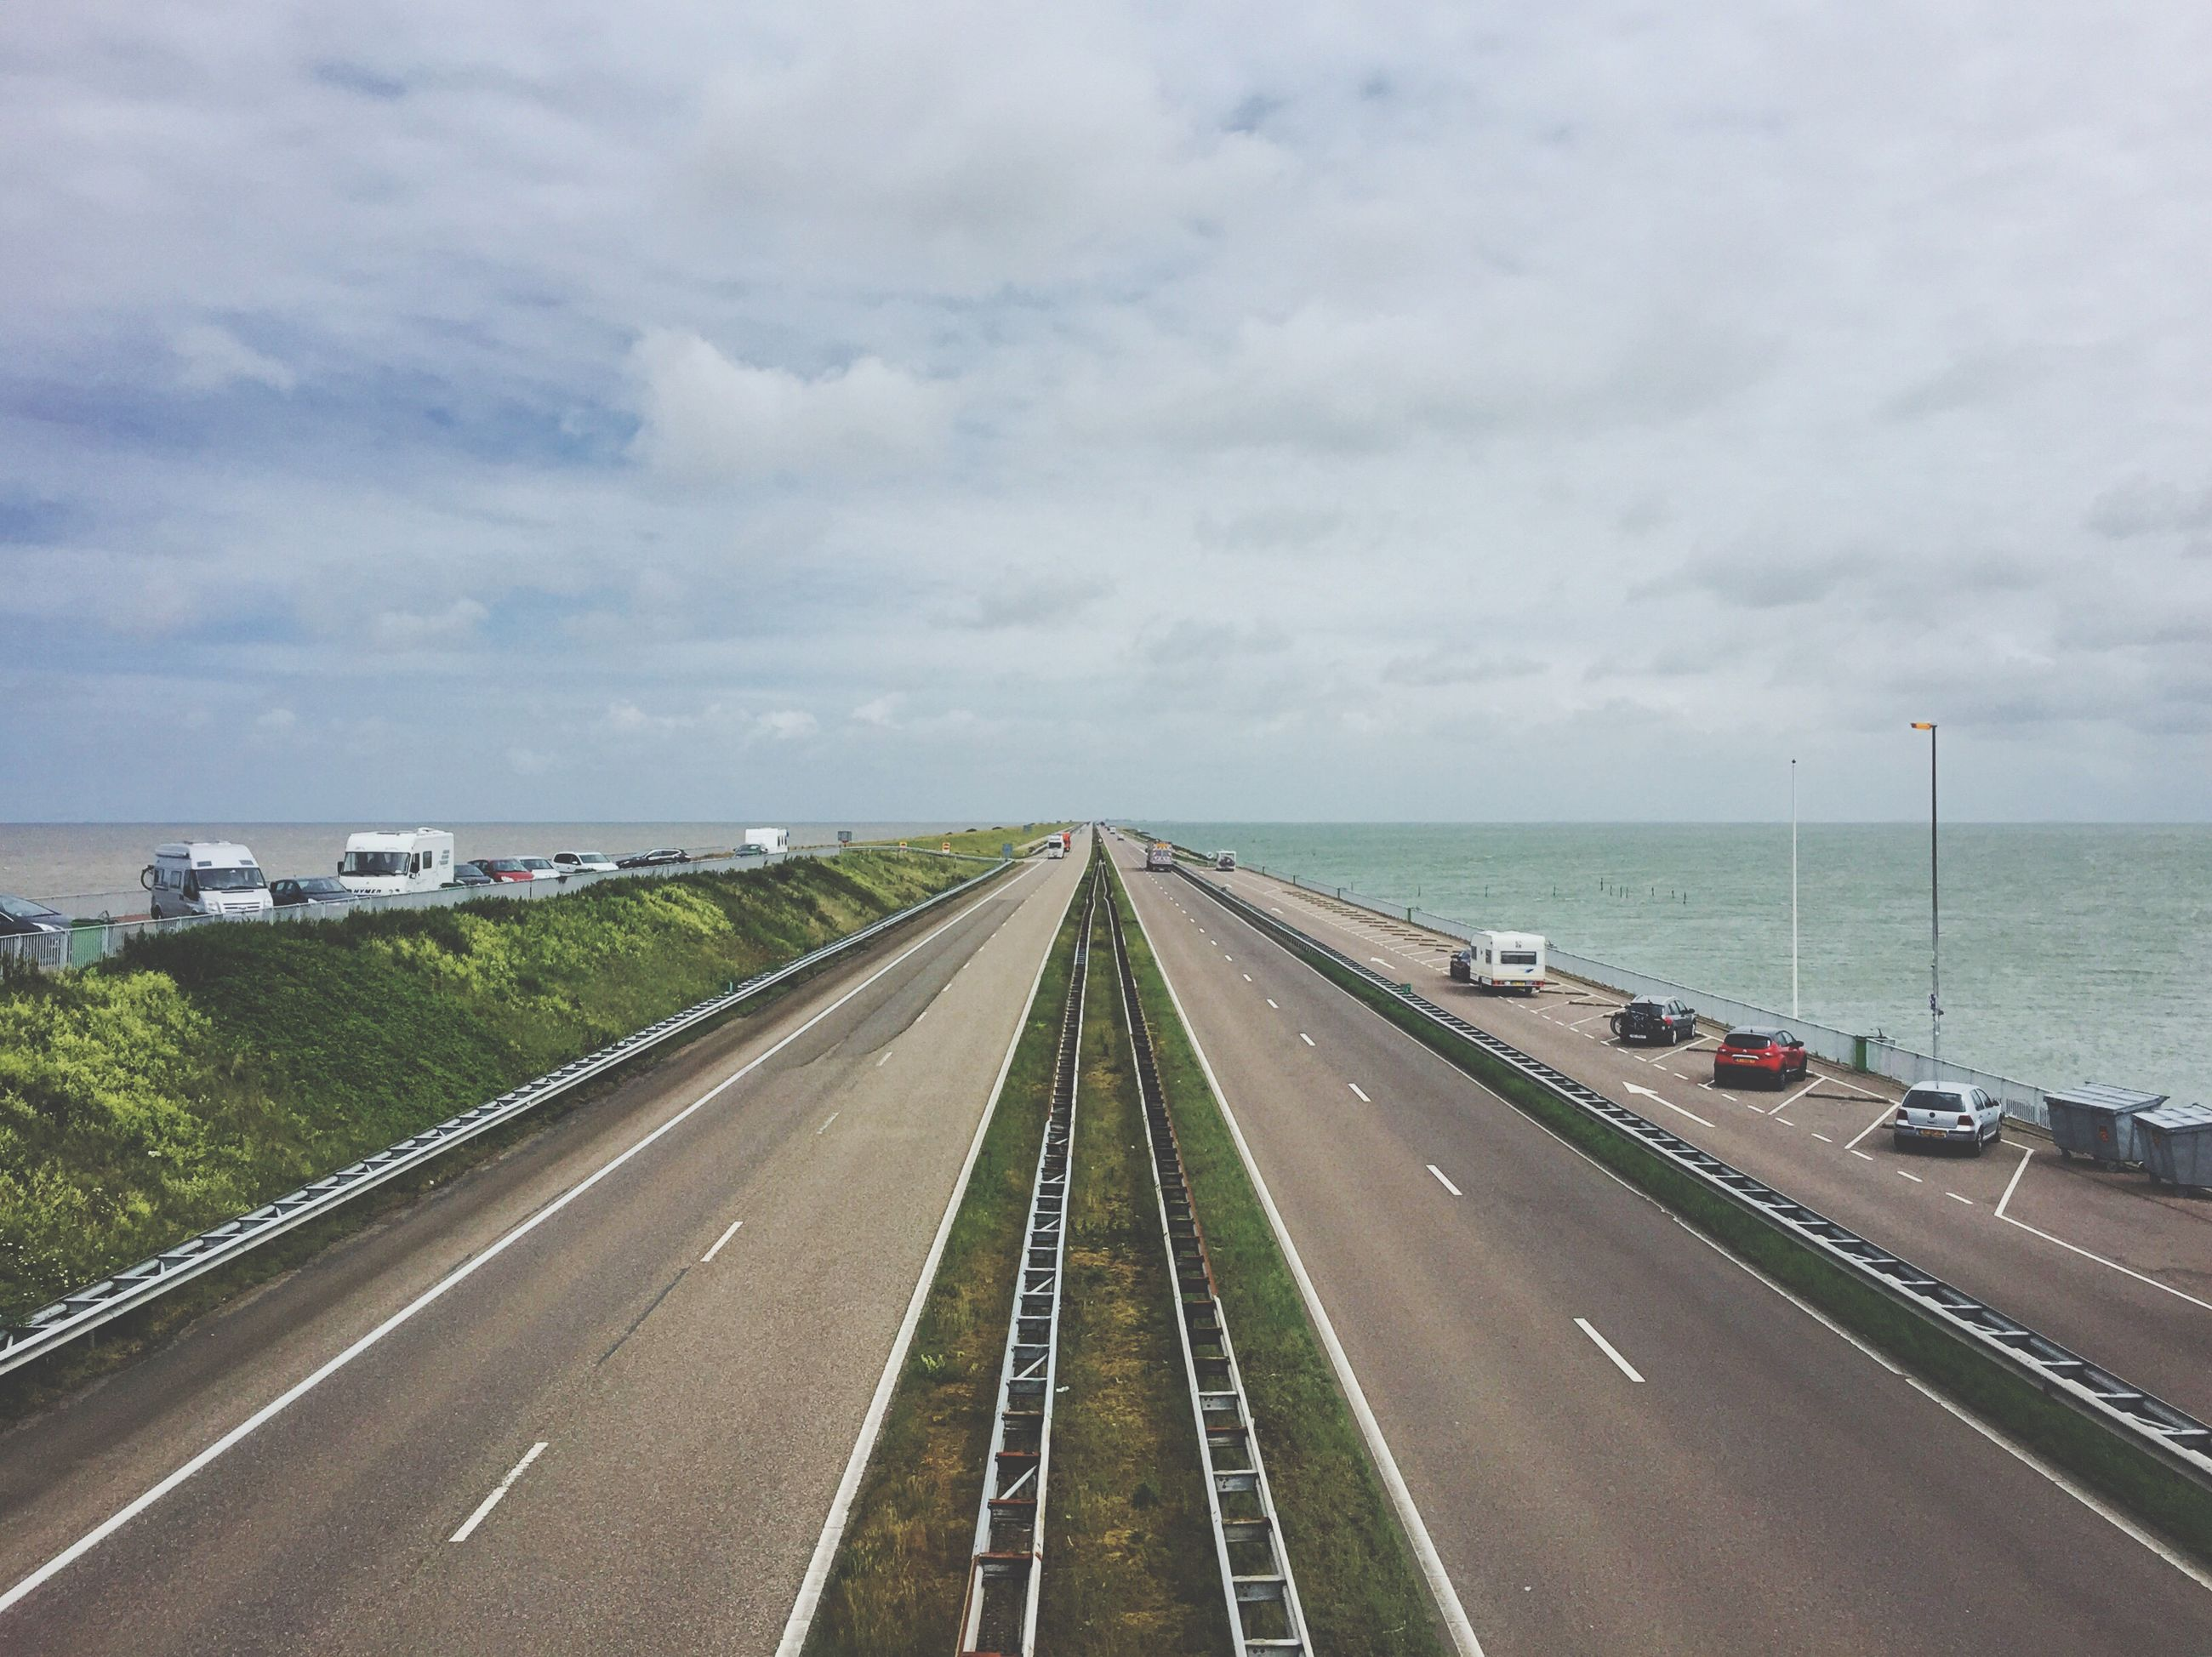 transportation, road, sky, cloud - sky, road marking, mode of transport, diminishing perspective, day, the way forward, land vehicle, car, no people, water, outdoors, sea, nature, scenics, horizon over water, architecture